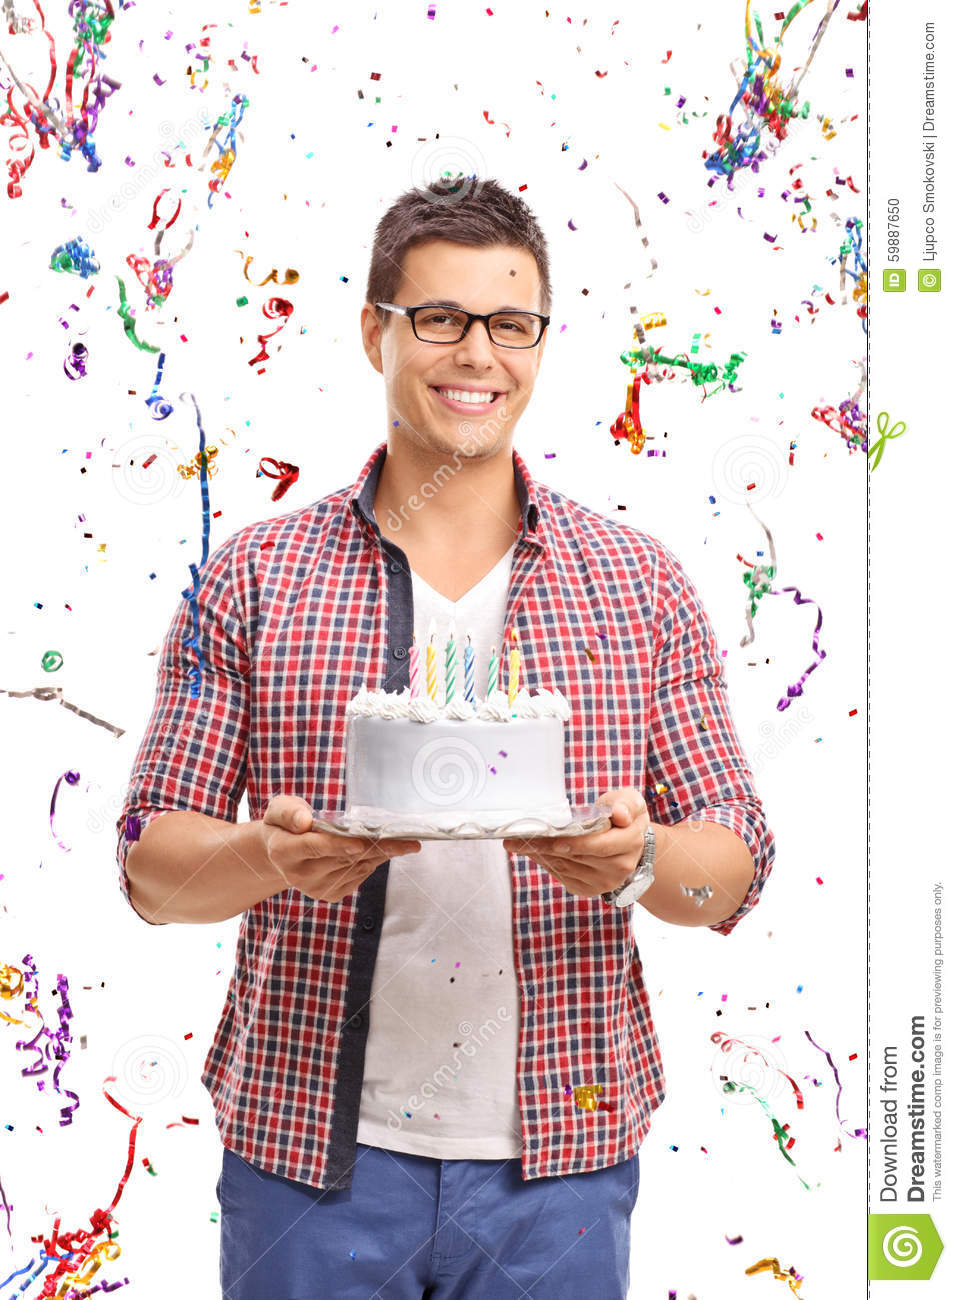 Young man carrying a birthday cake